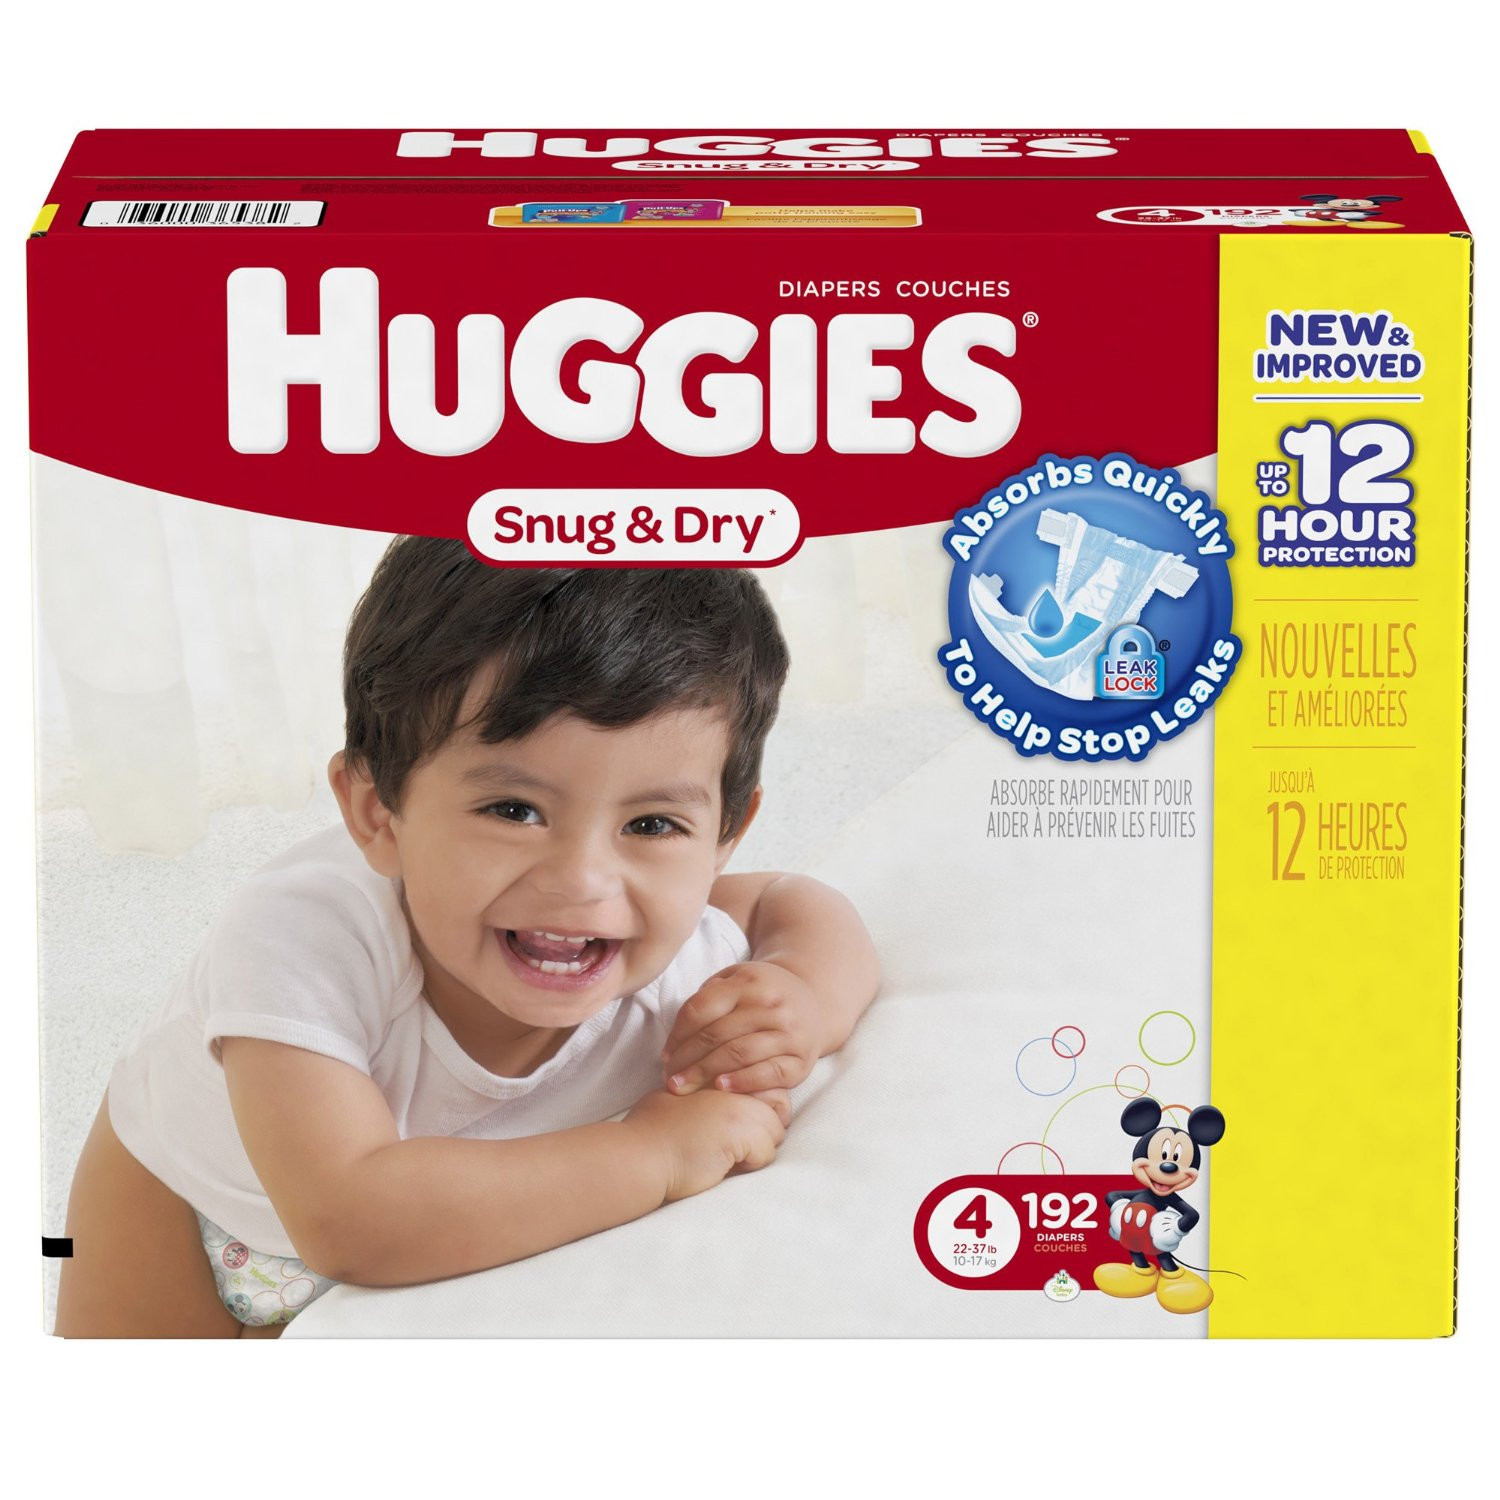 Huggies Snug and Dry Diapers, Size 4, Economy Plus Pack, 192 Count